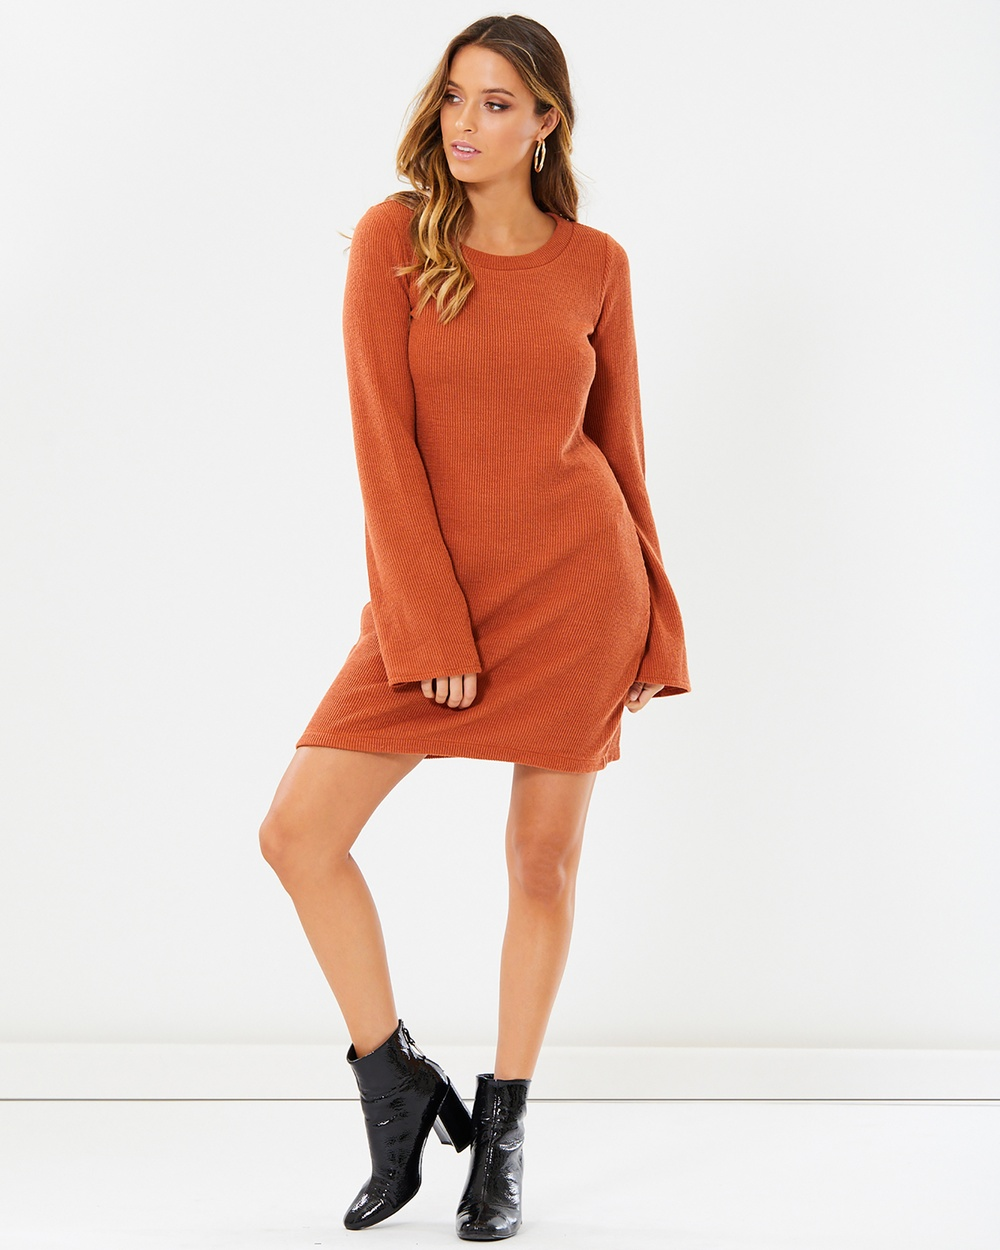 Calli Valentina Dress Dresses Rust Valentina Dress